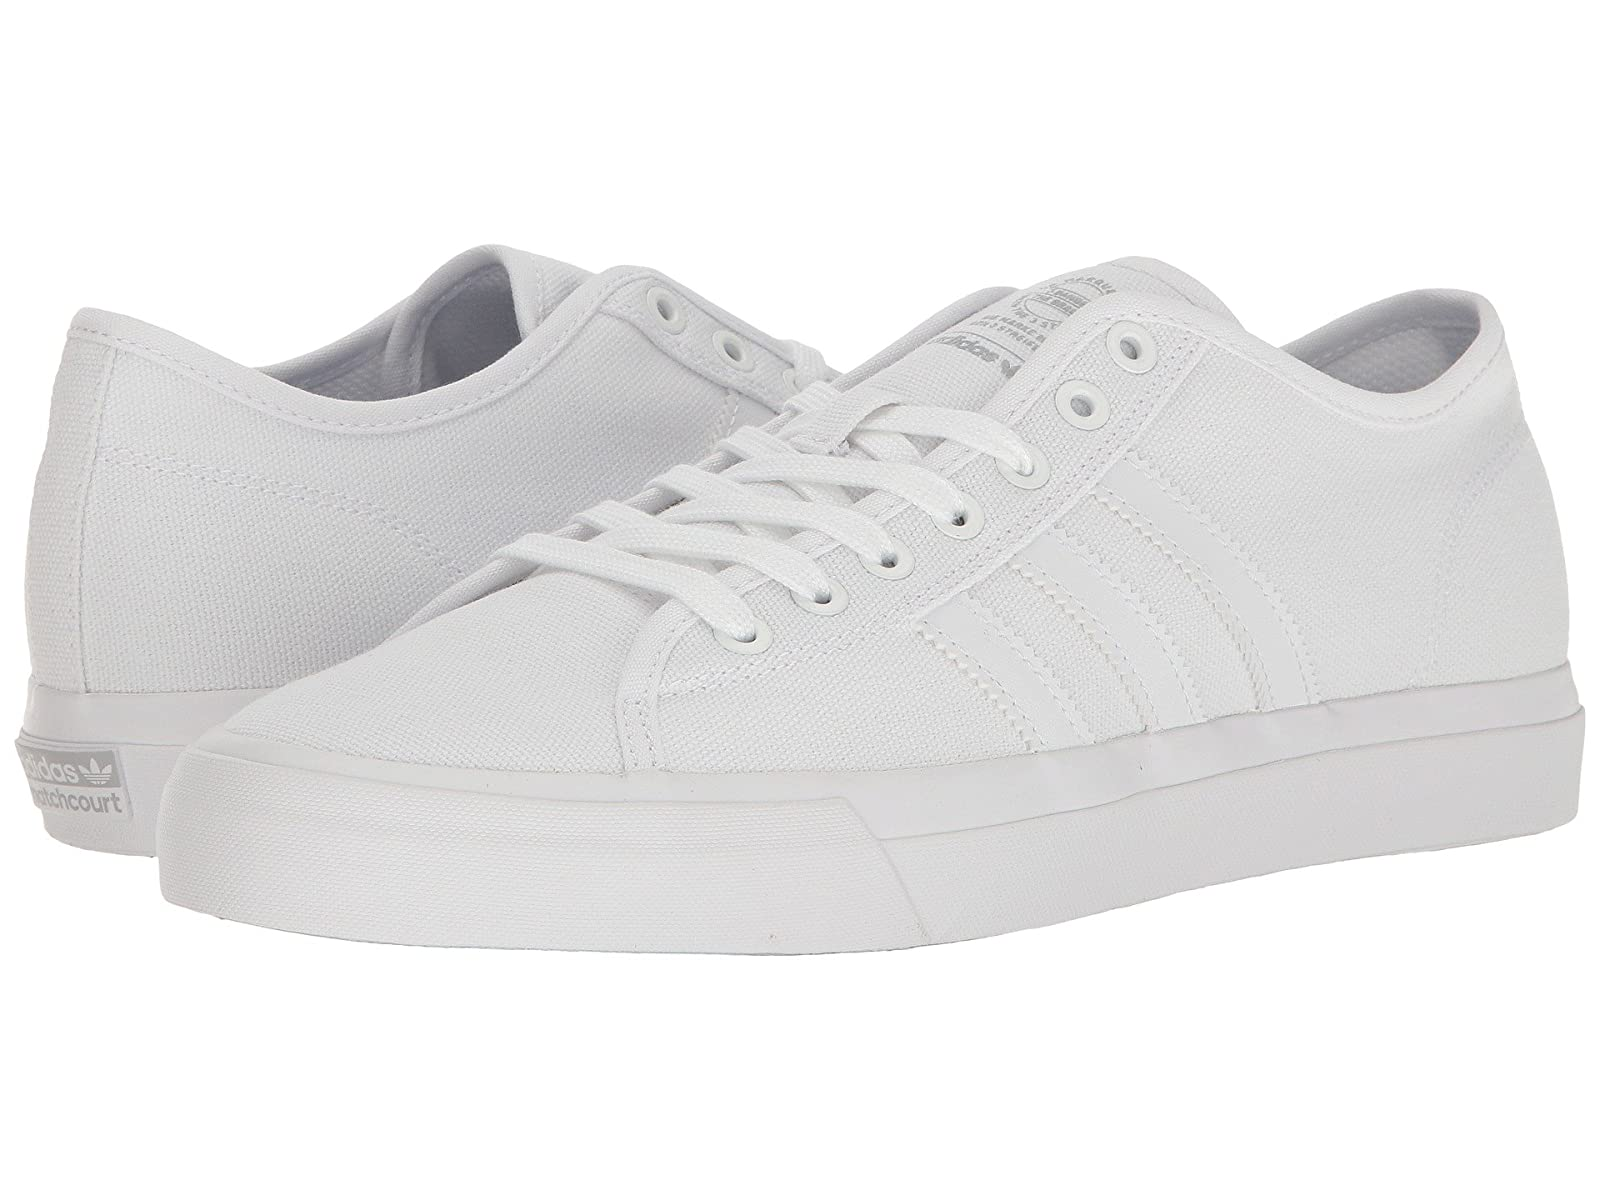 adidas Skateboarding Matchcourt RXAtmospheric grades have affordable shoes